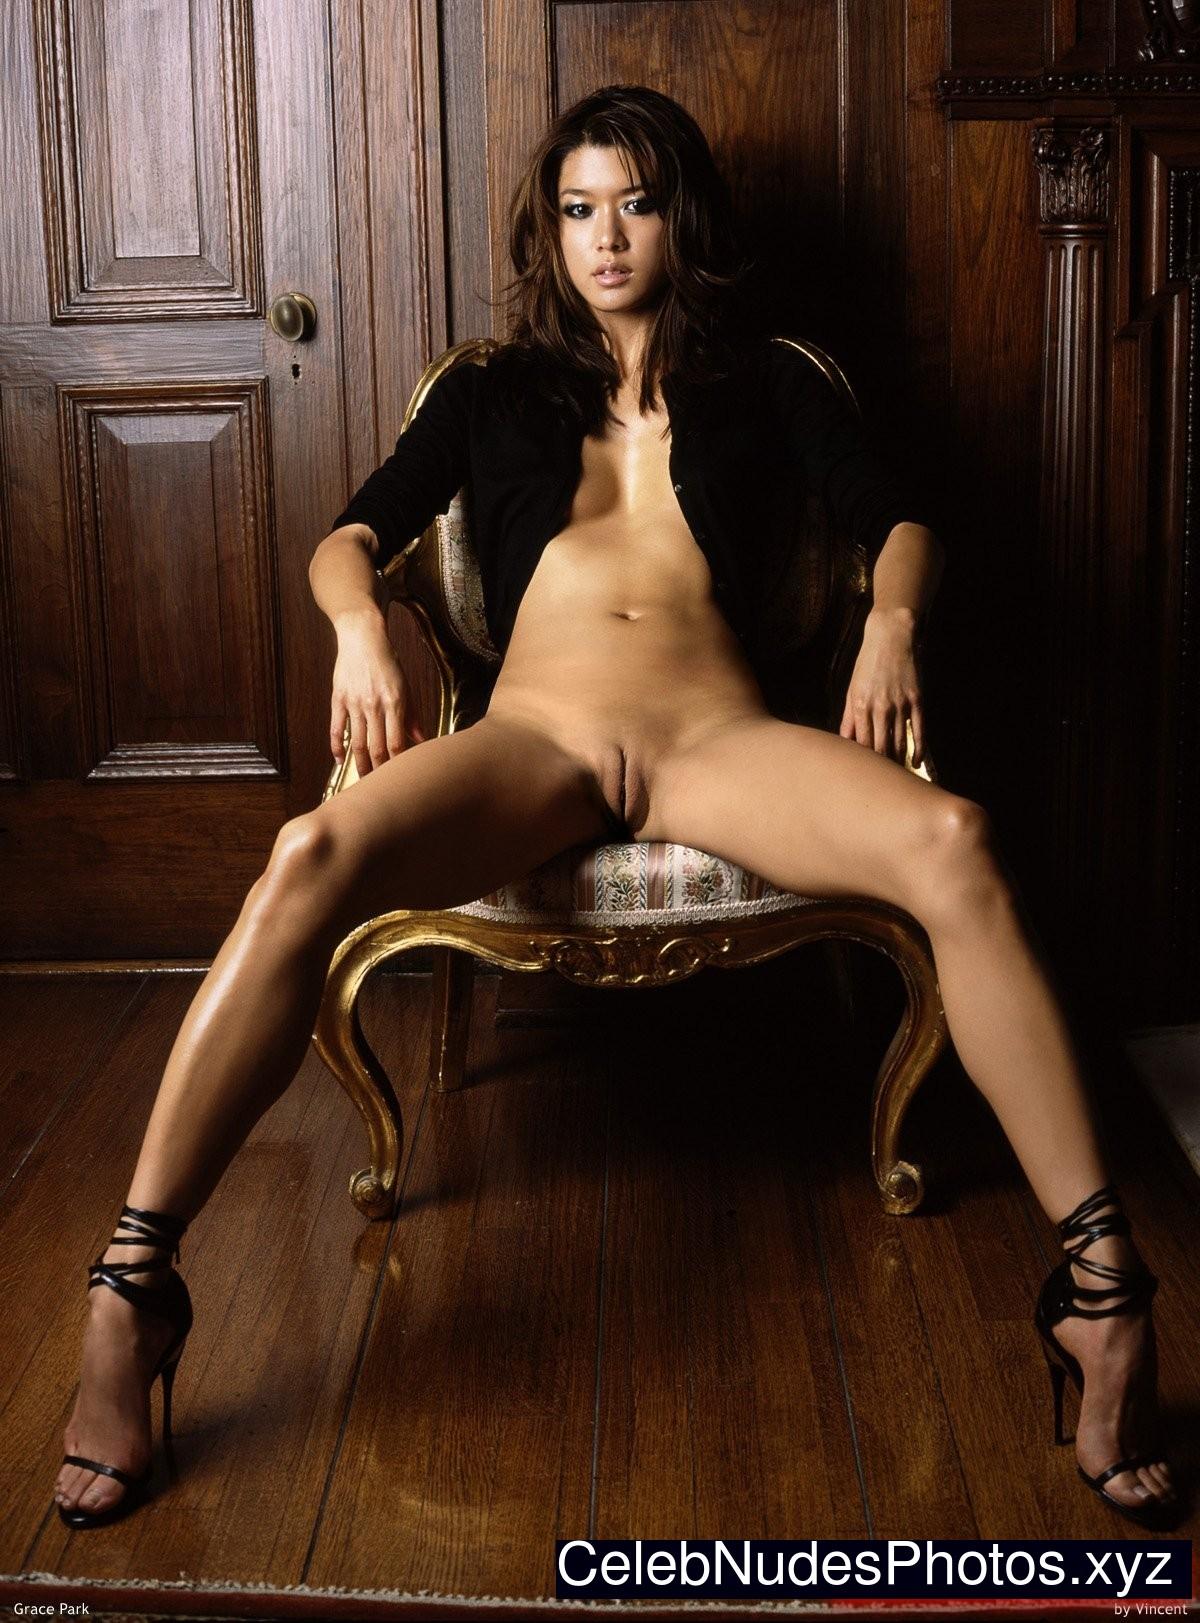 hot sexy nude pics of grace park